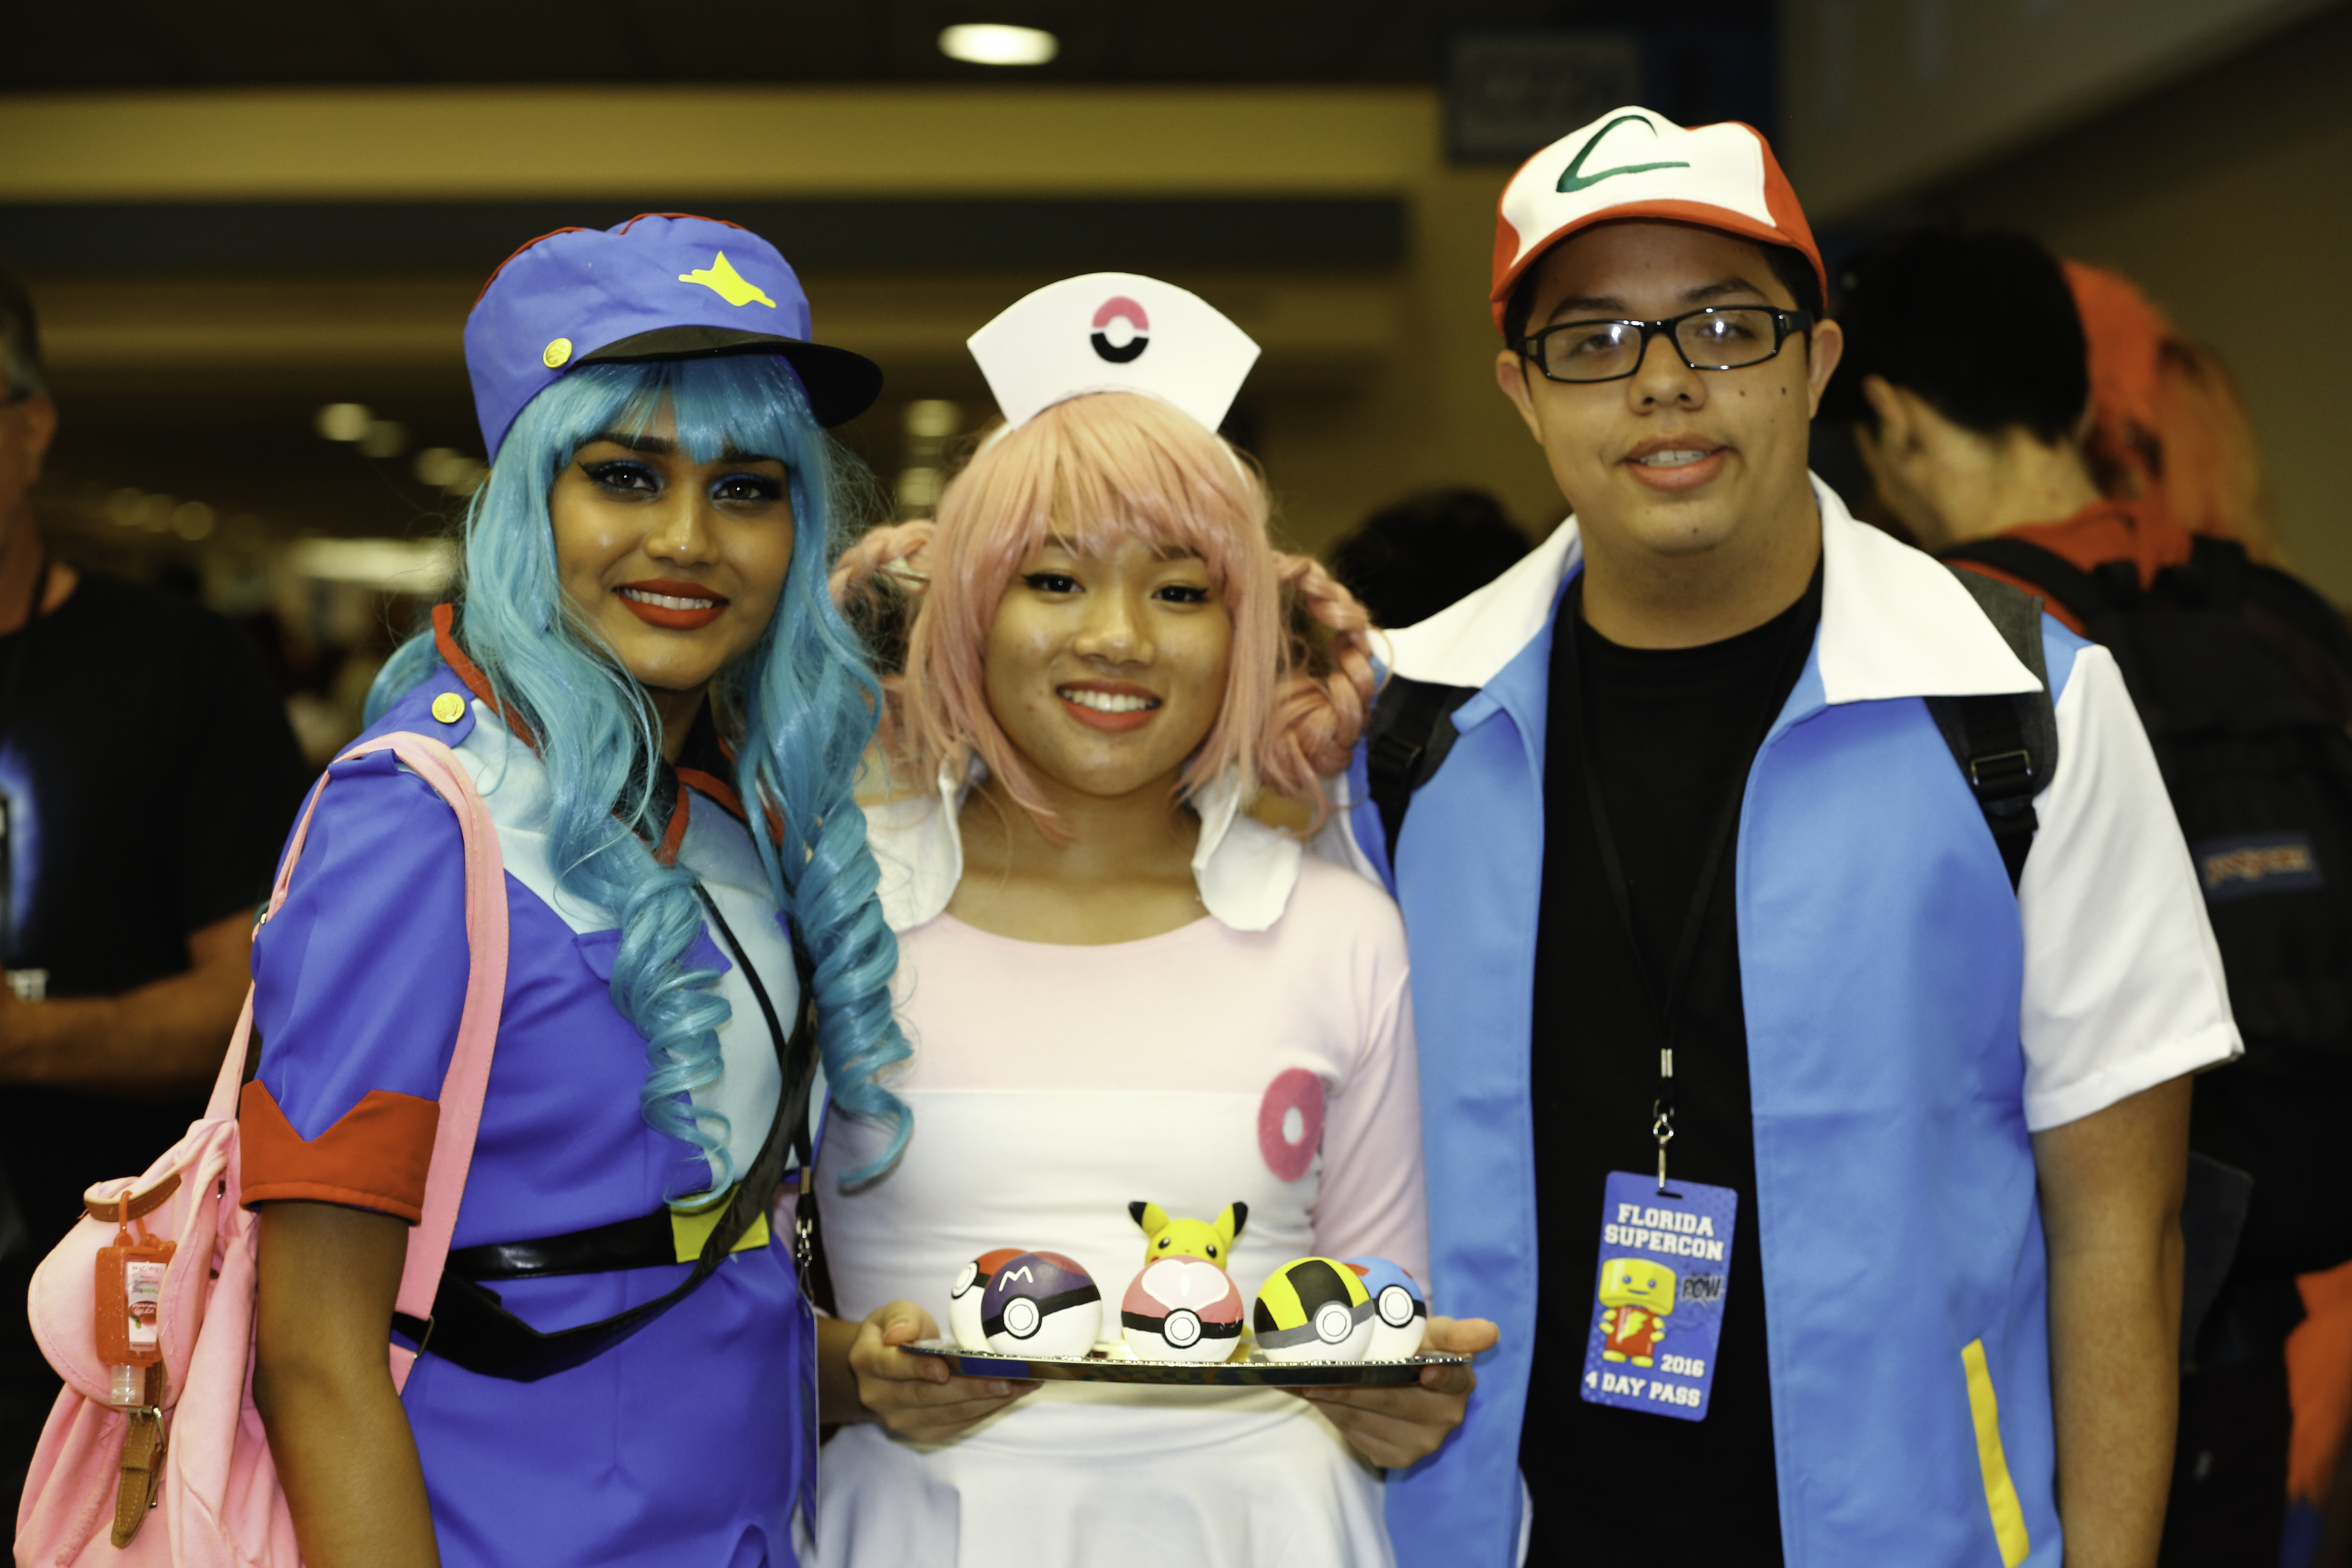 Cosplayers dressed as characters from Pokemon.